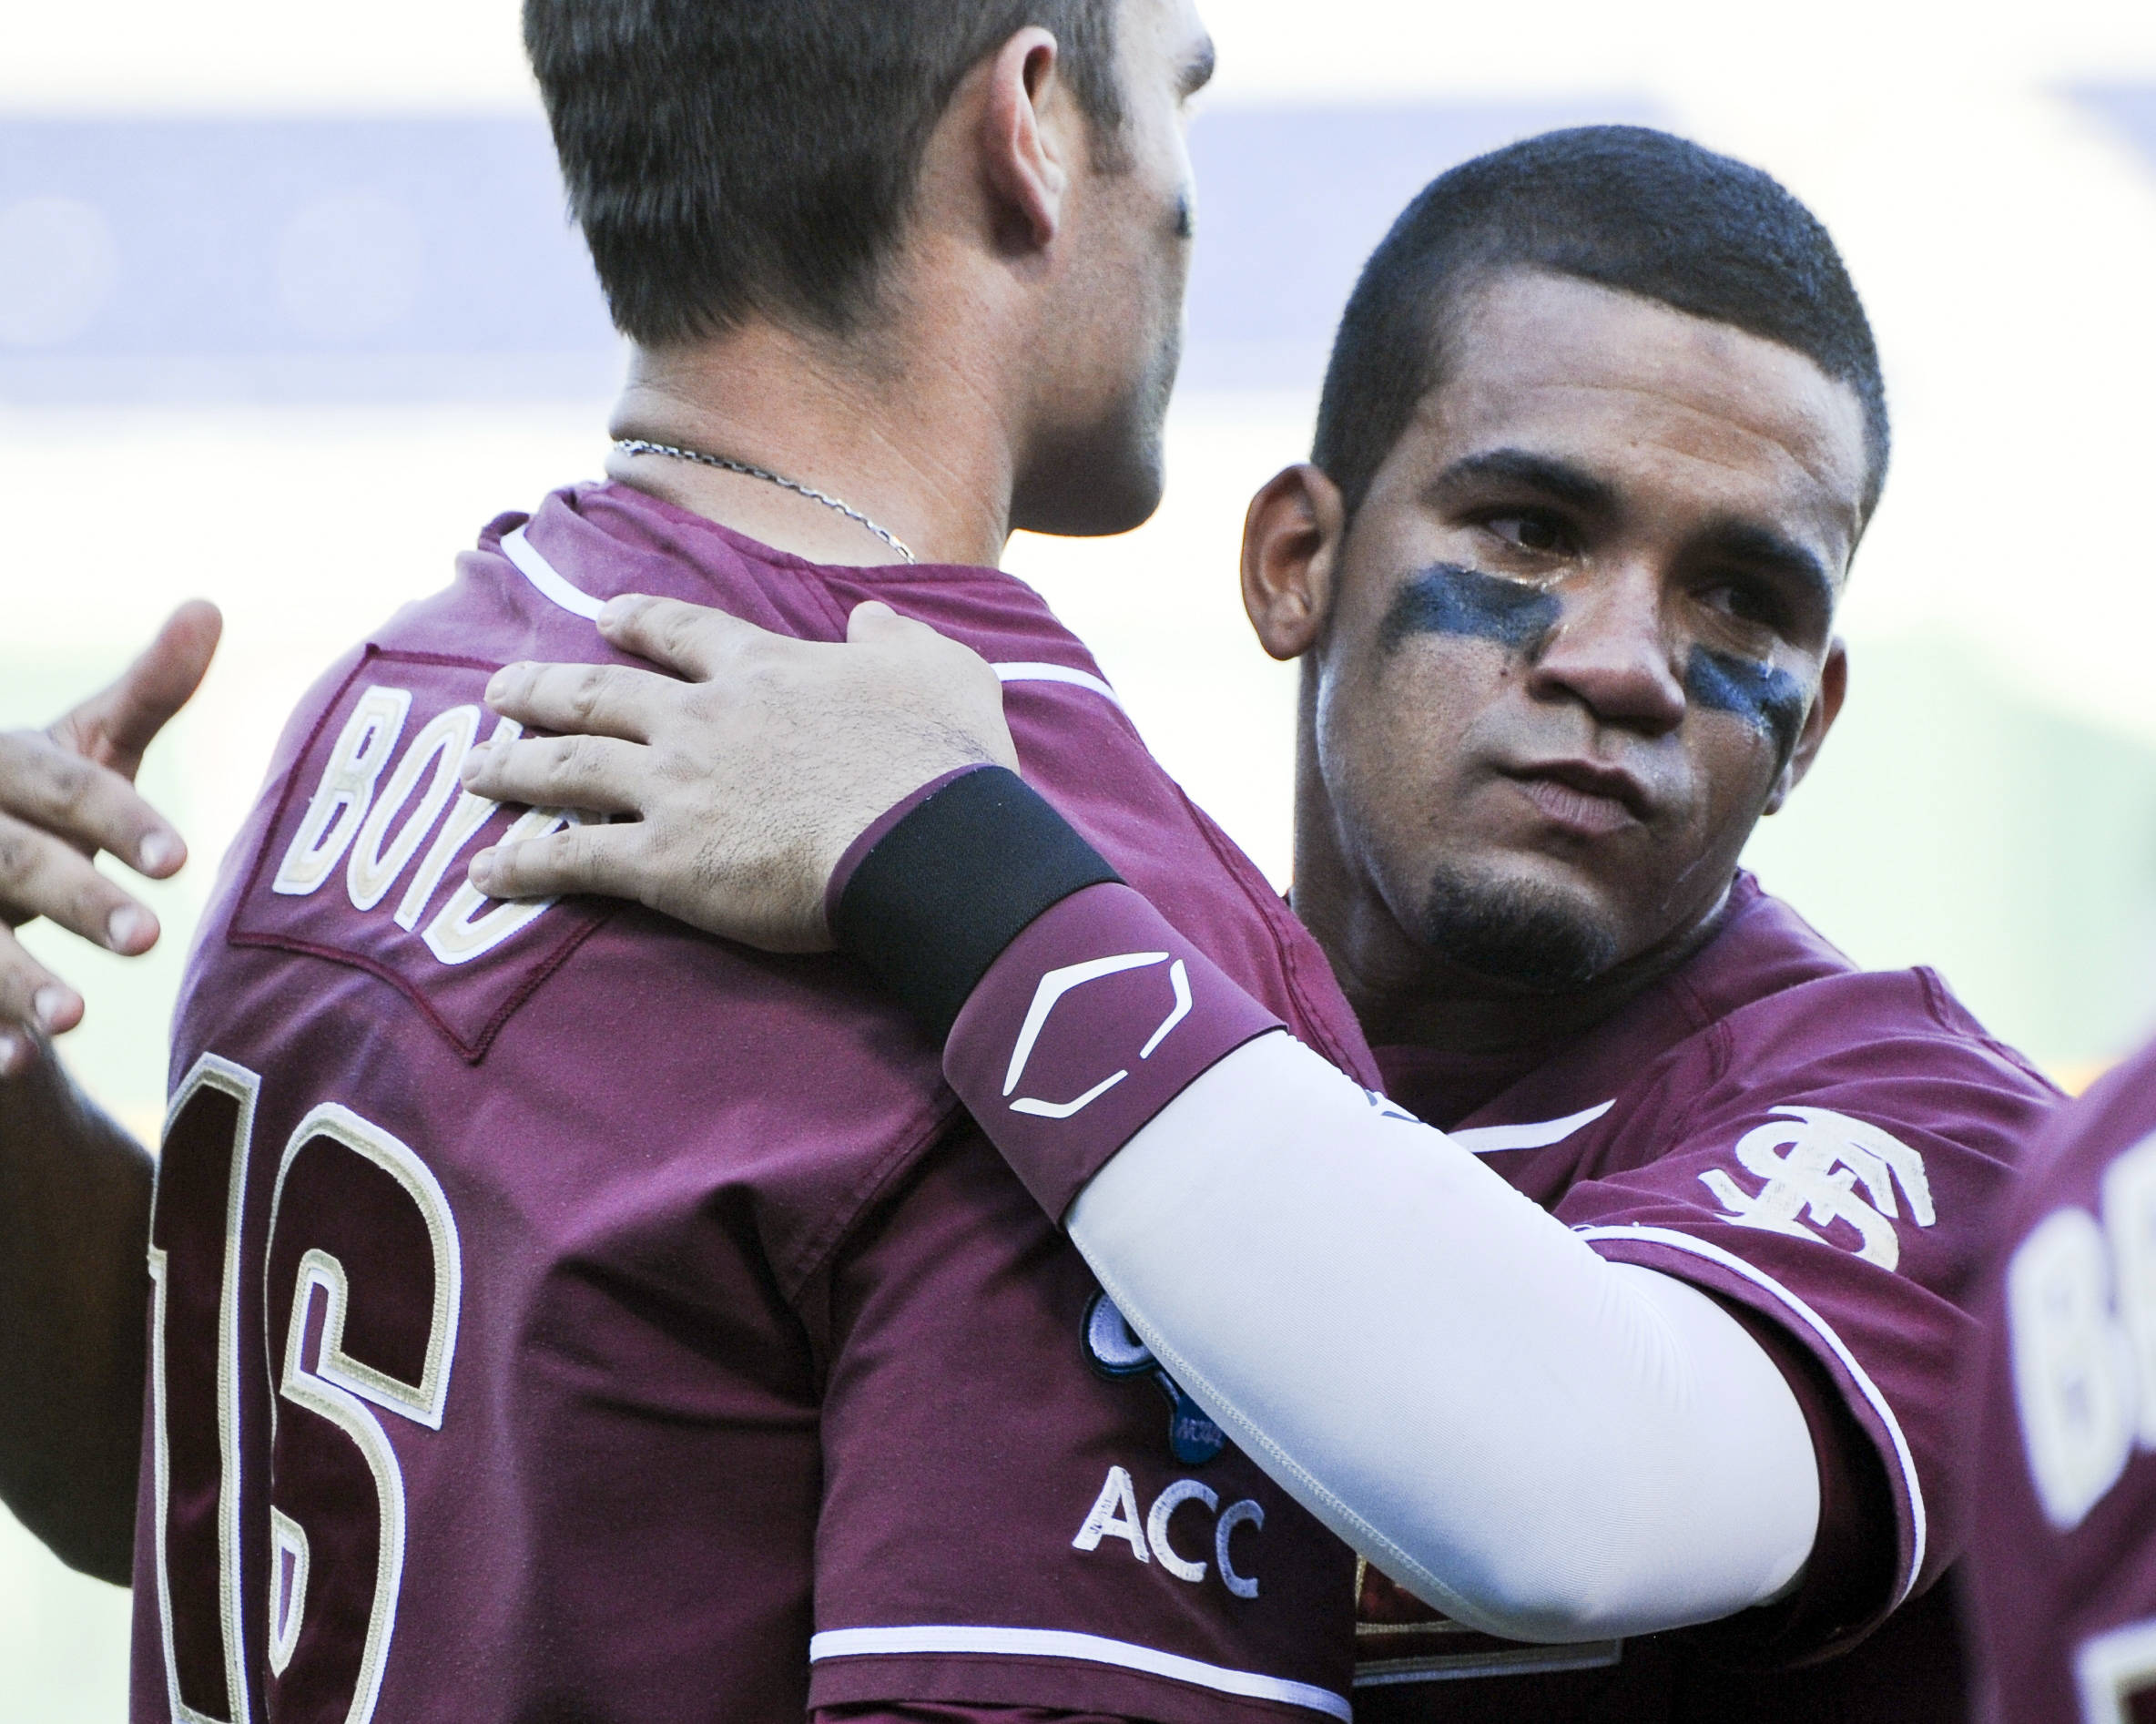 A crying Florida State's Devon Travis, right, hugs teammate Jayce Boyd, left, following an NCAA College World Series baseball game against Arizona. Arizona defeated Florida State 10-3. (AP Photo/Dave Weaver) (AP Photo/Eric Francis)